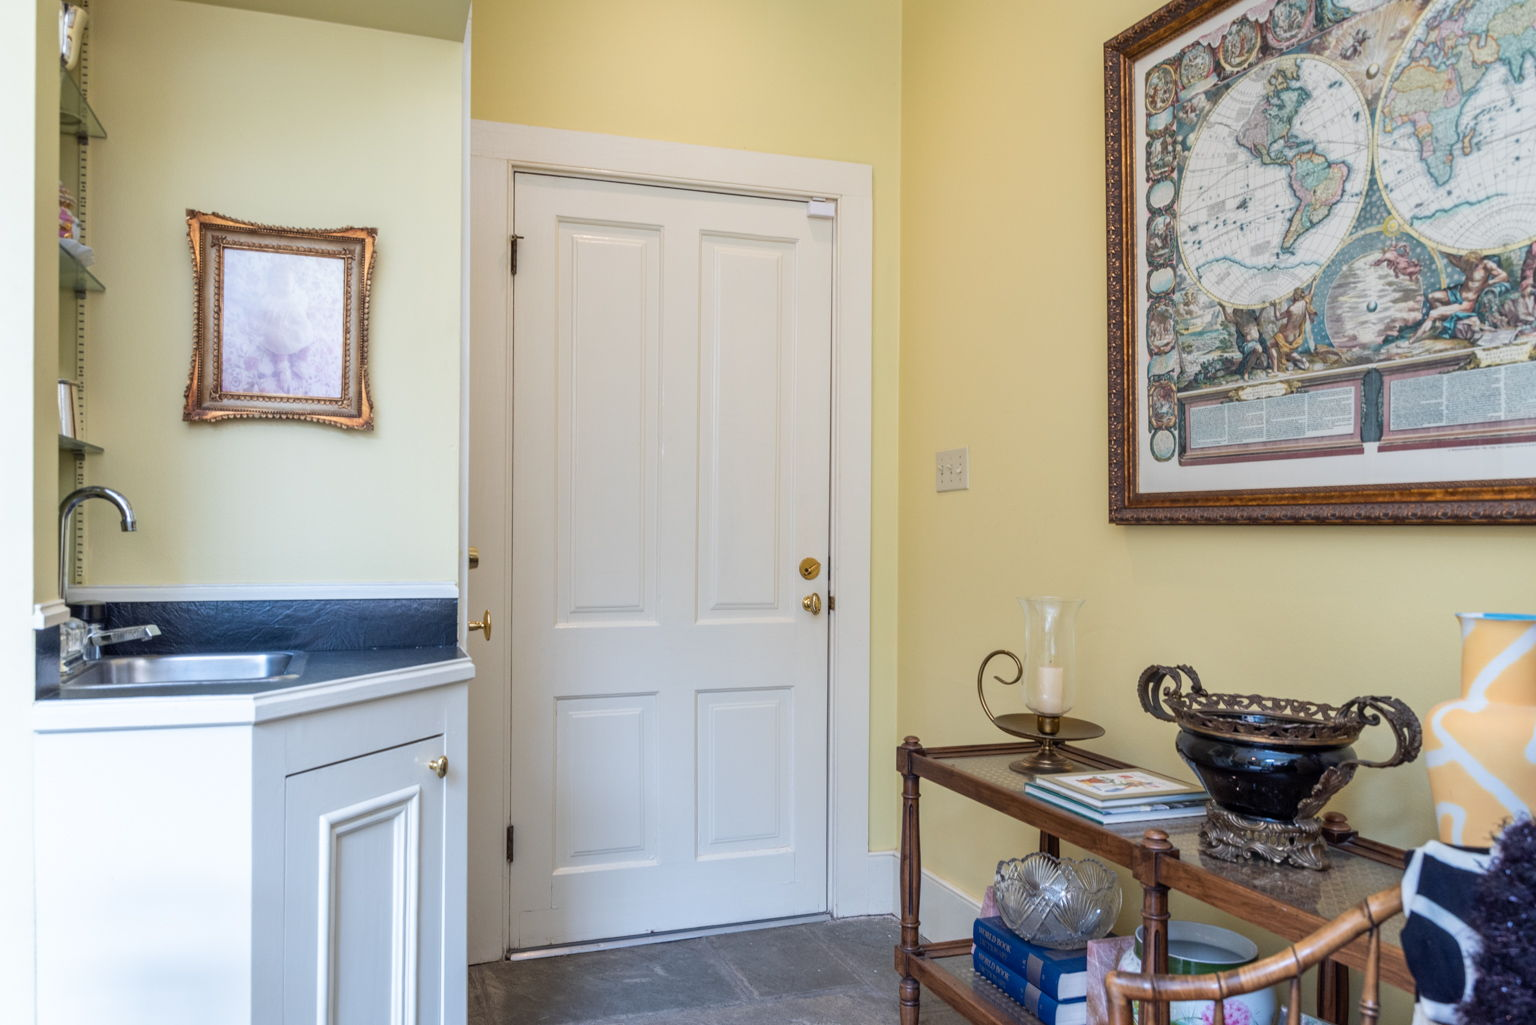 The downstairs powder room off the hallway